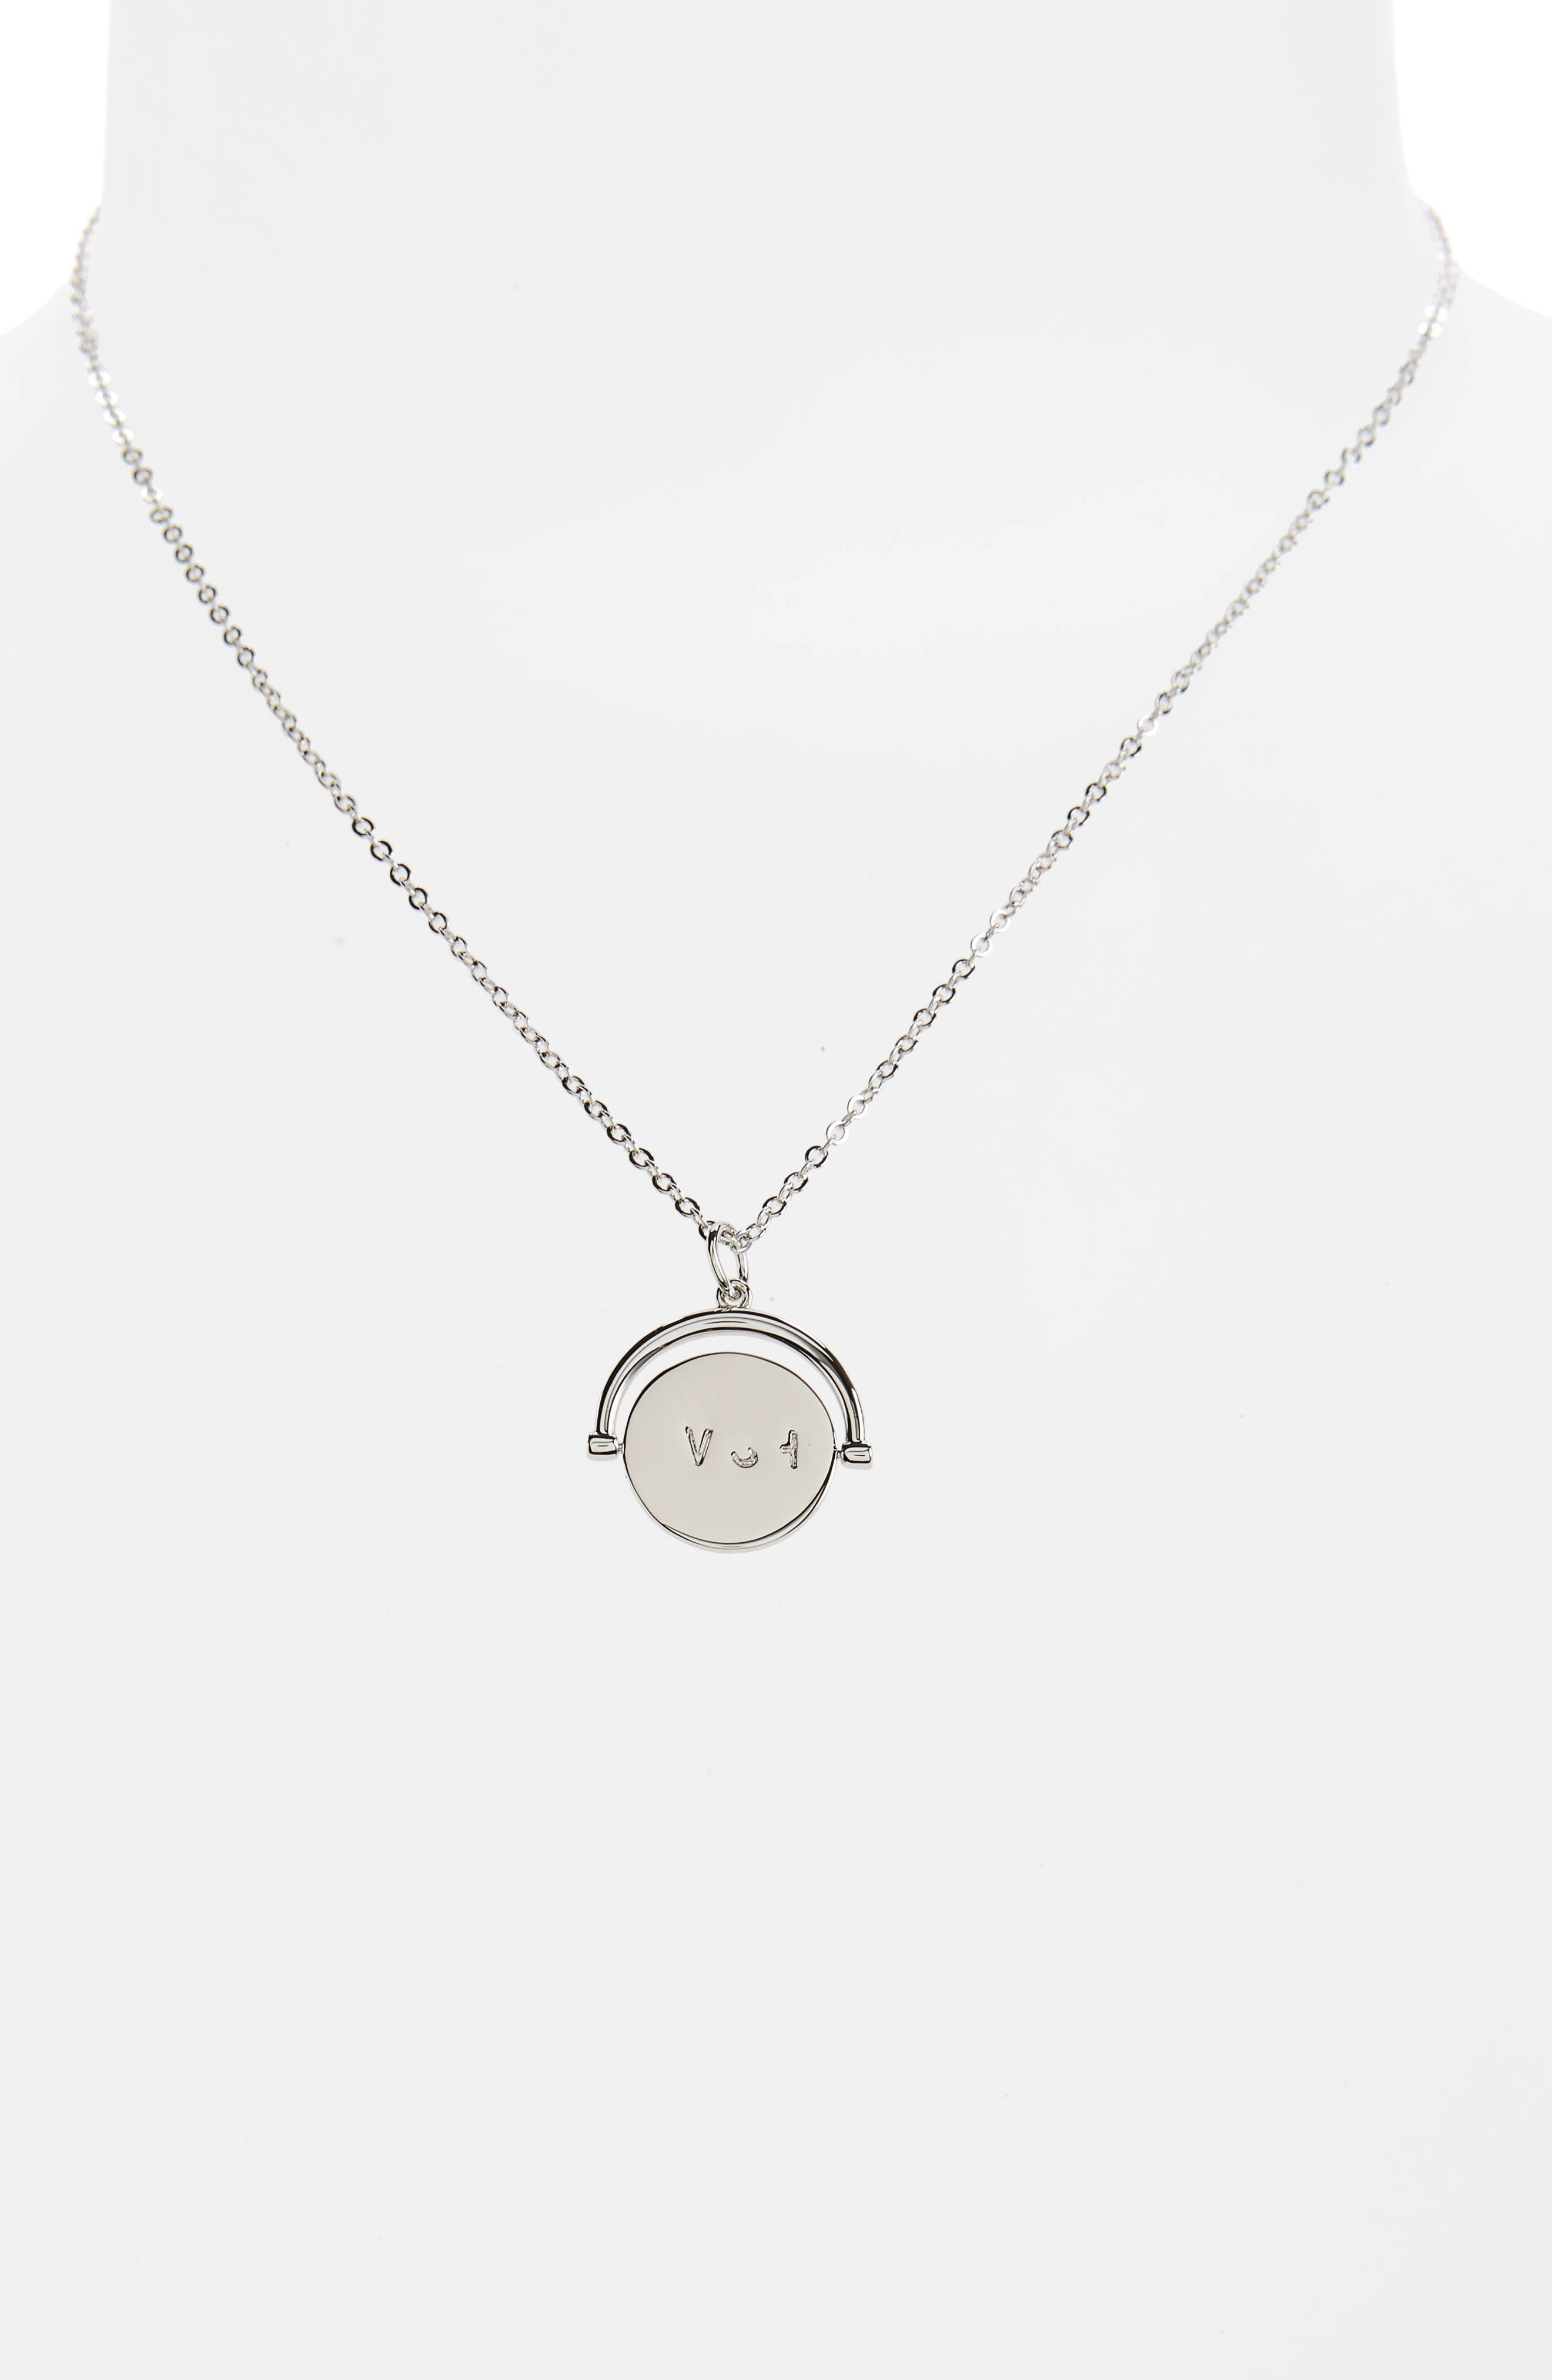 Wish Love Code Charm Necklace,                             Alternate thumbnail 3, color,                             Wish/ Silver